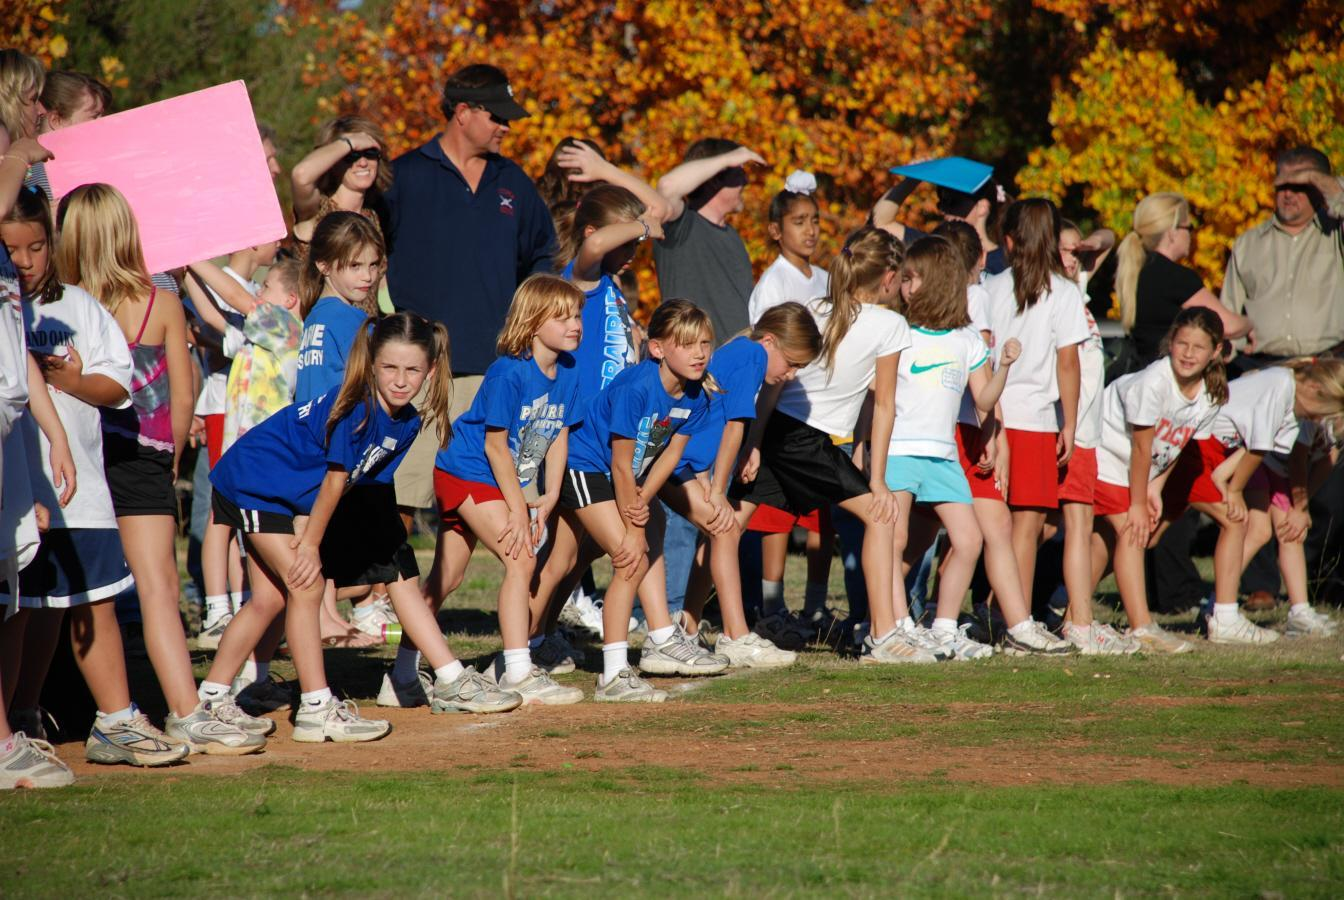 Prairie Students at a Cross-Country Run